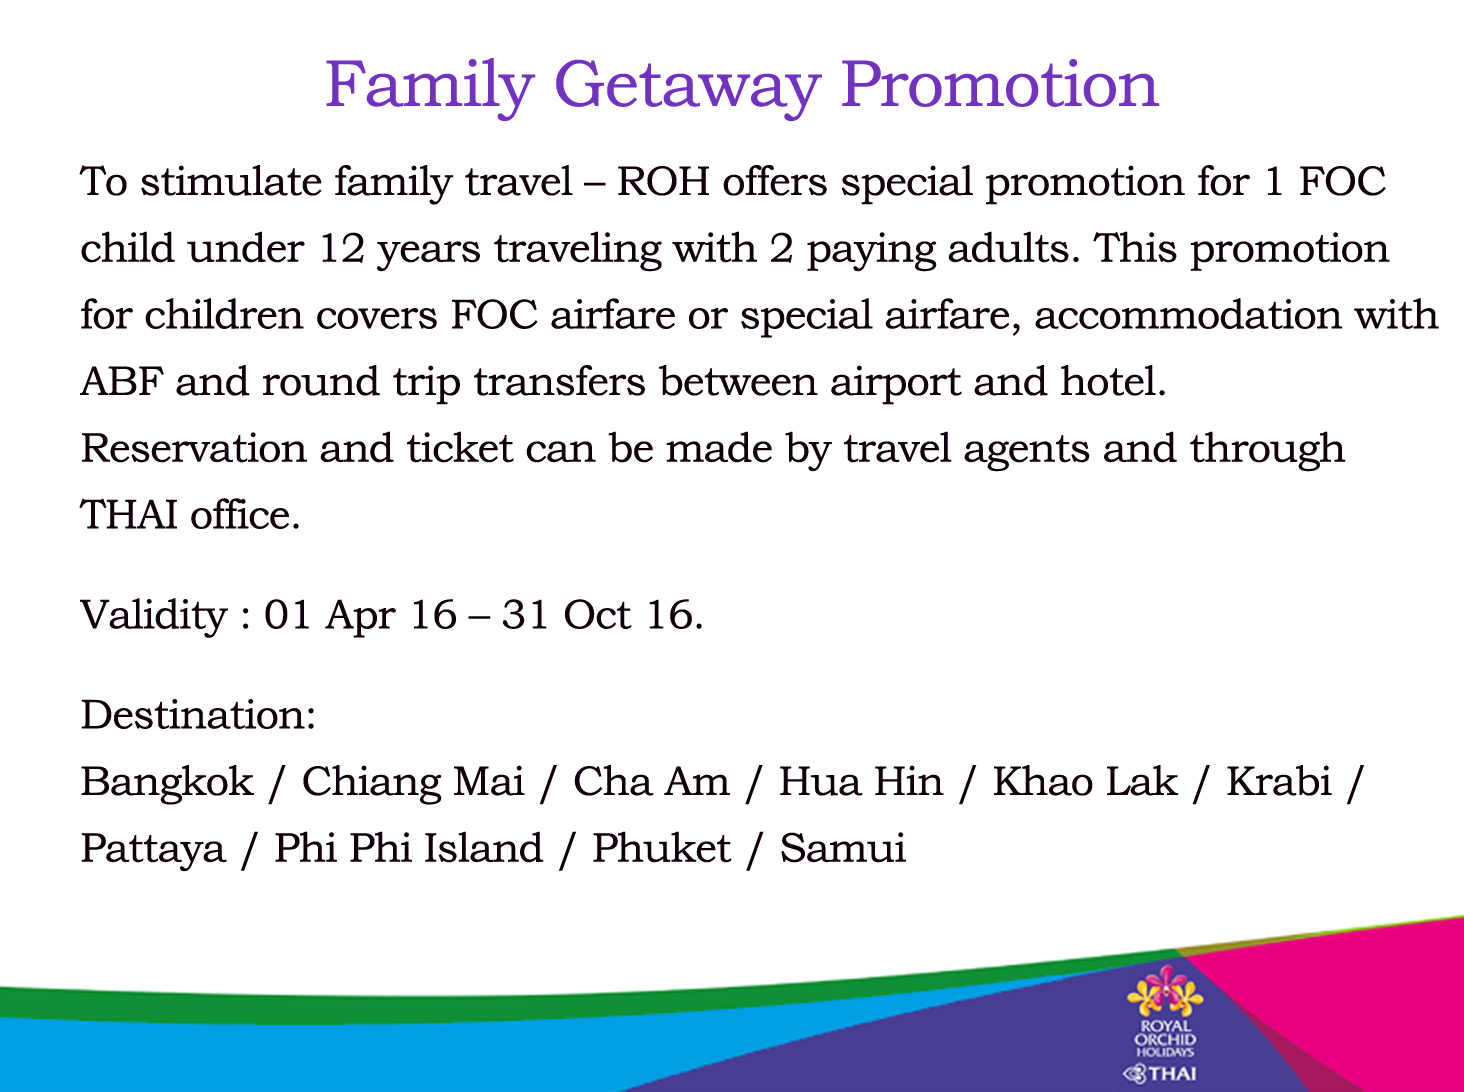 Family Getaway Promotion 2016